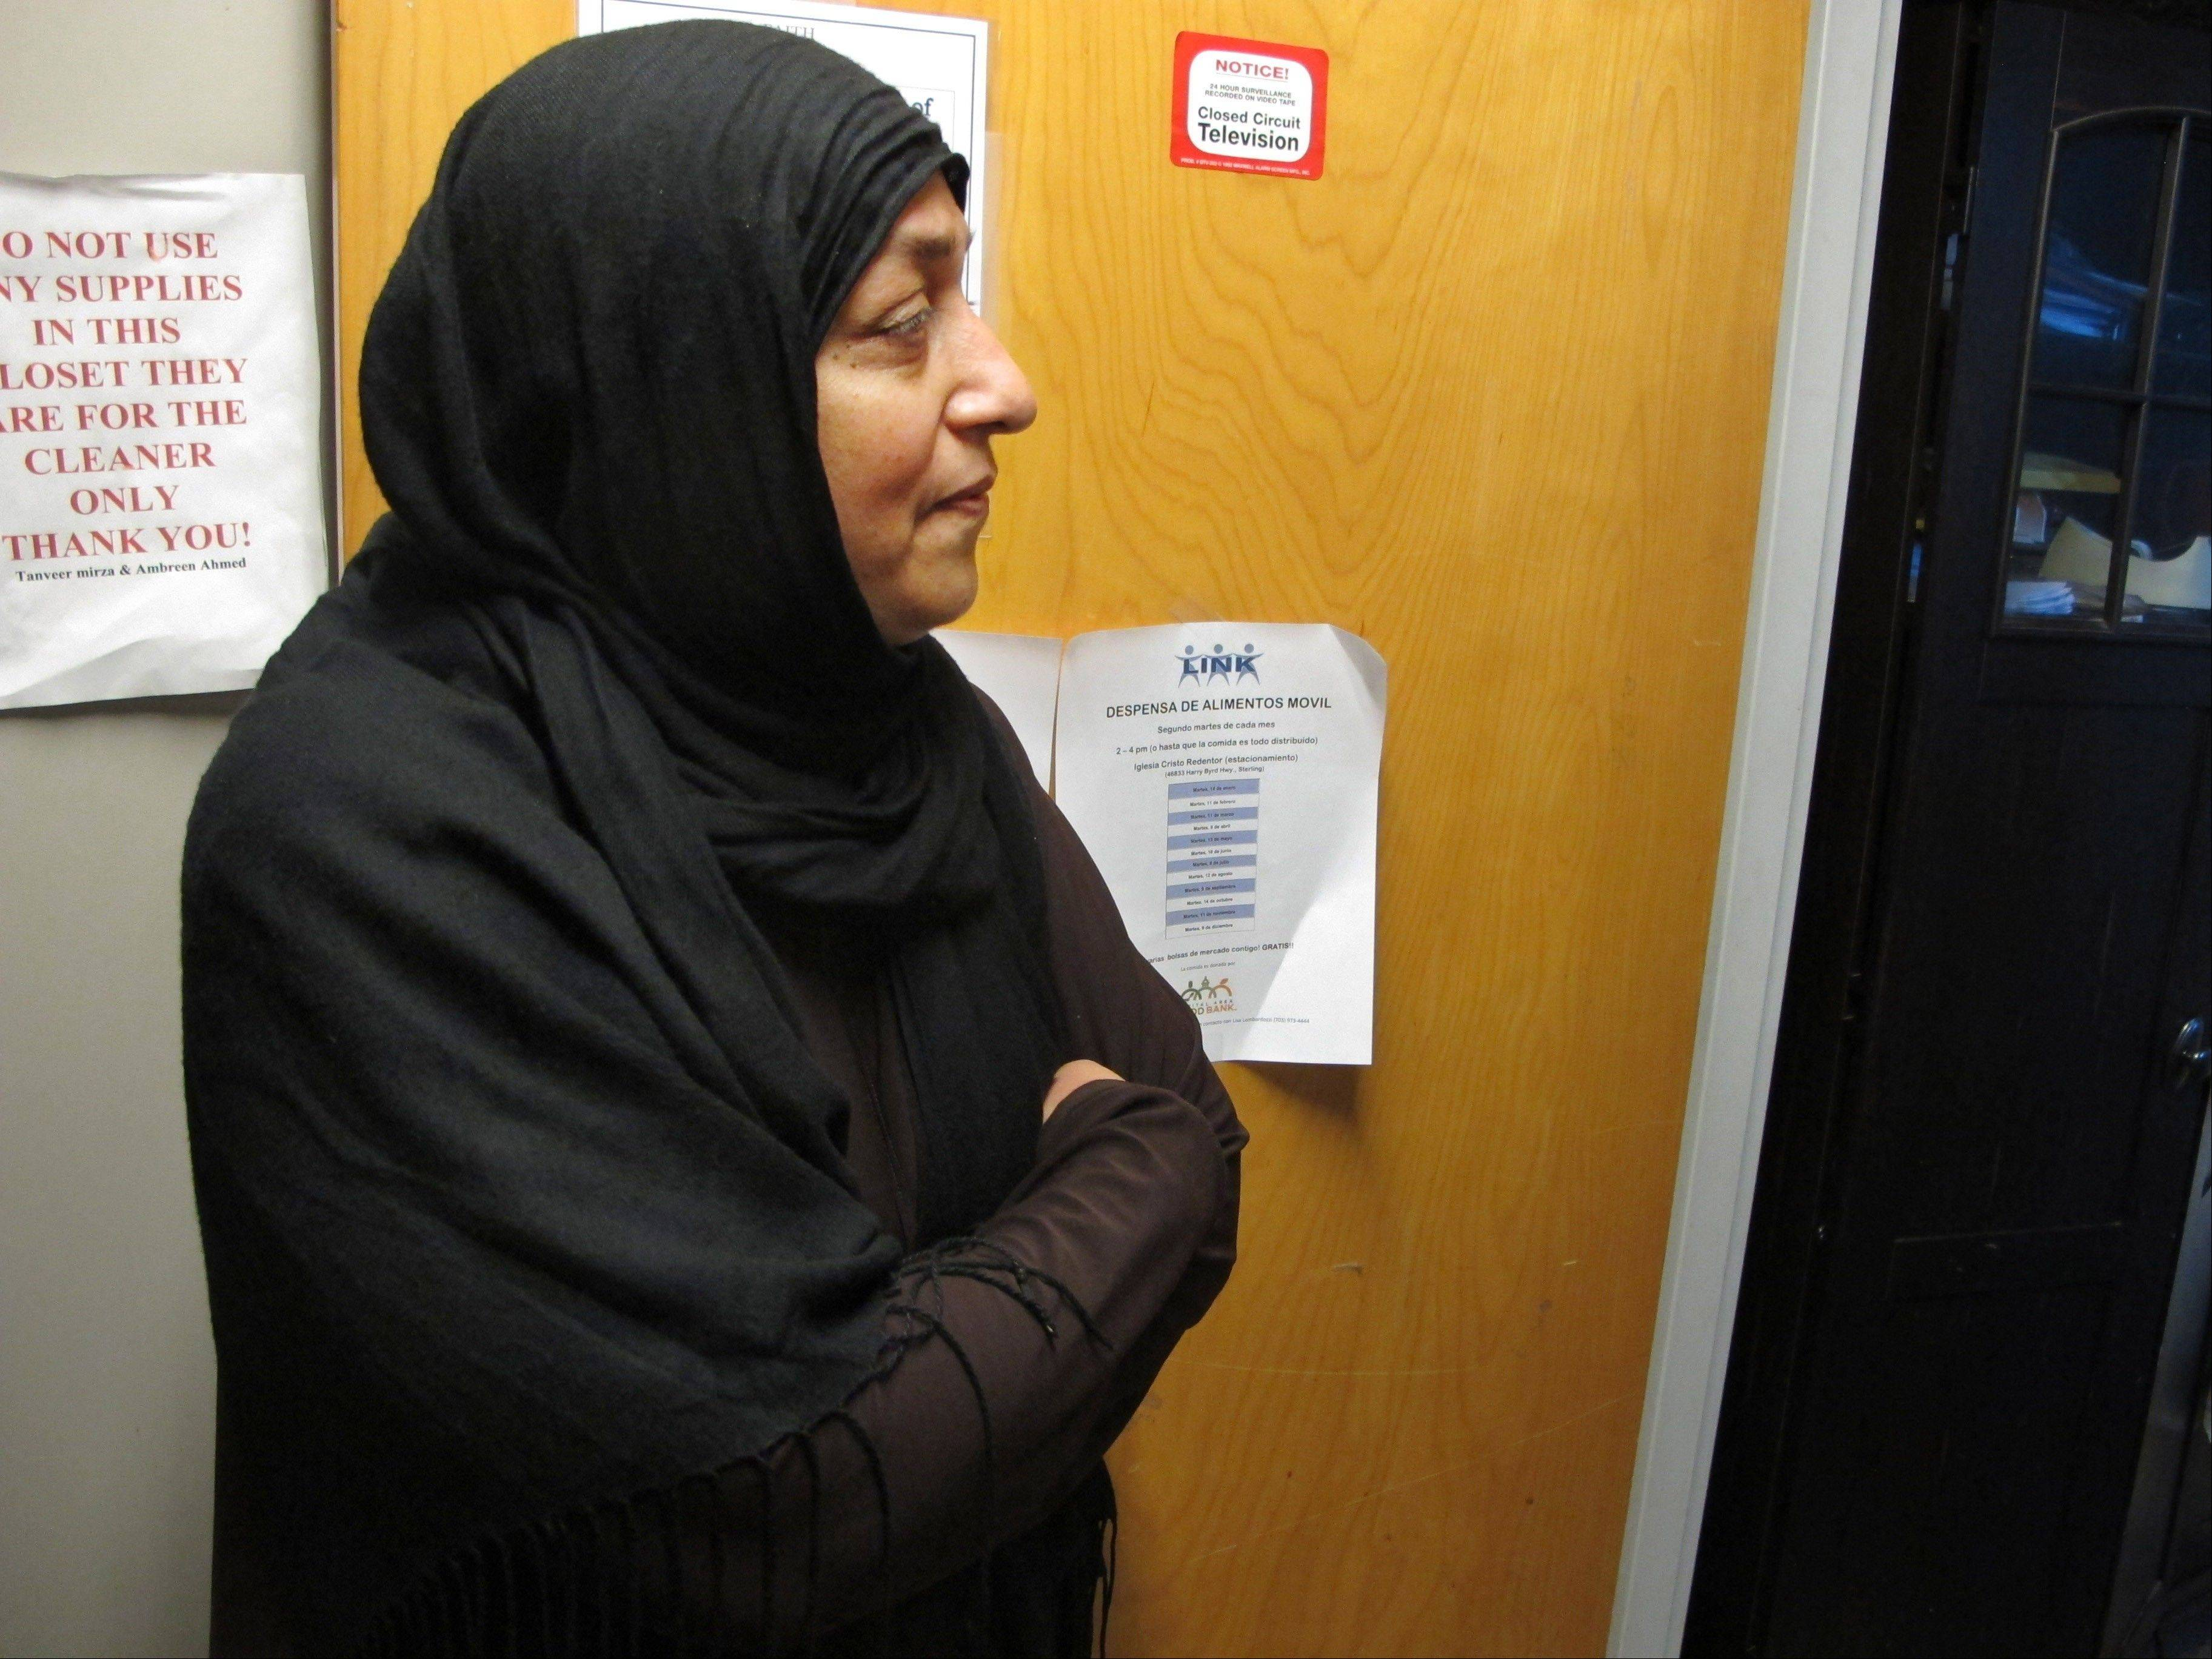 Tanveer Mirza stands in the FAITH Social Services offices in Herndon, Va. Mirza emigrated from Pakistan 37 years earlier. In 1999 her mosque started this effort to assist refugees from the civil war in Bosnia who were being resettled in Northern Virginia.